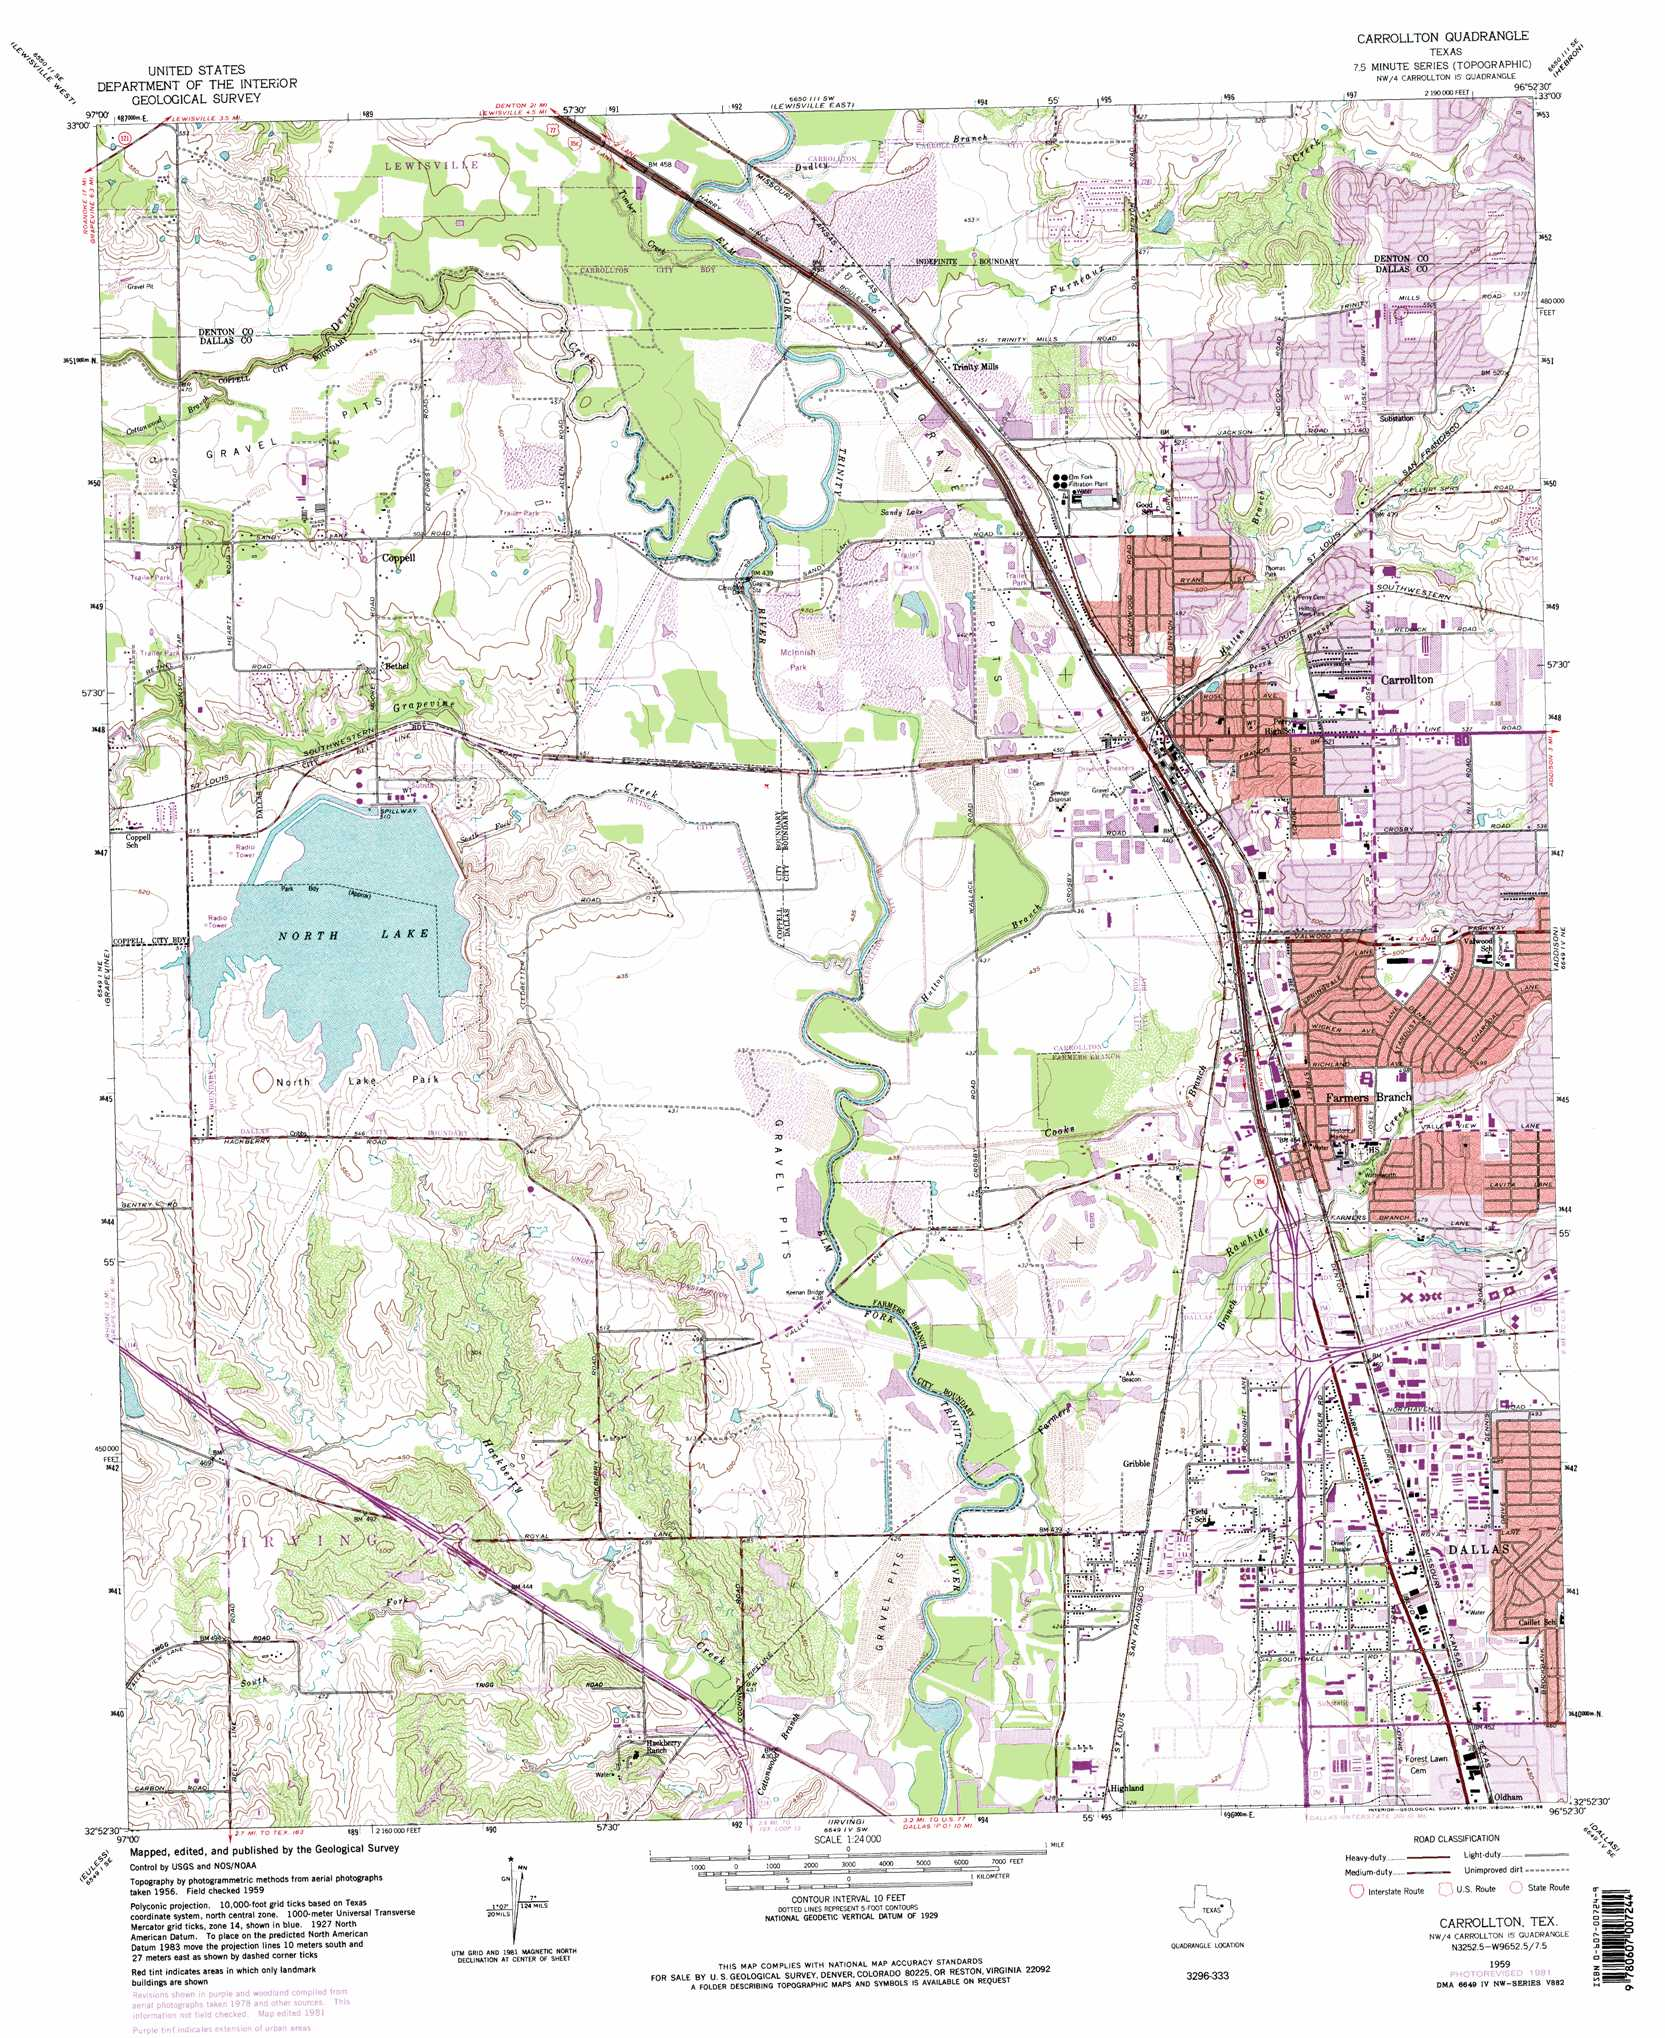 south bend indiana map with 32096h8 on Used Toy Haulers For Sale Goshen Elkhart South Bend Dealer Xpreownedinventory together with 5652455096 together with Mc map likewise Toneyfreeman as well Map And Directions Dealership Hours South Bend.